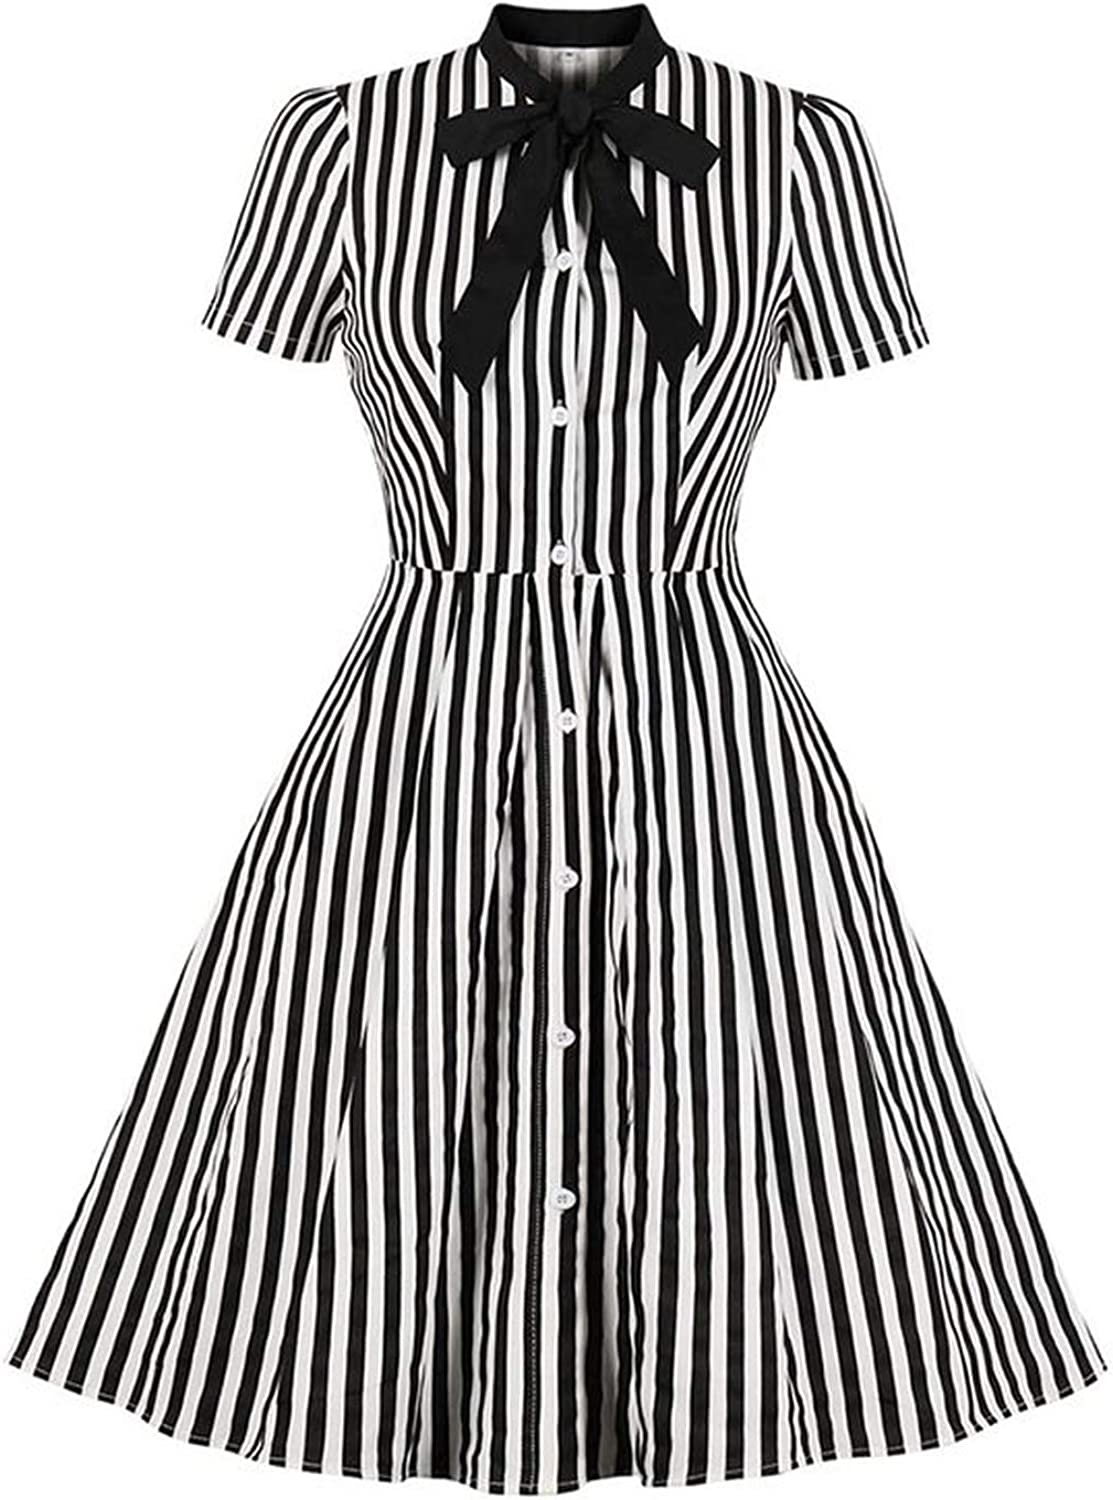 Vintage Stripe Midi Dress Women Summer Bow Collar Office Casual Goth Ladies Retro Dresses